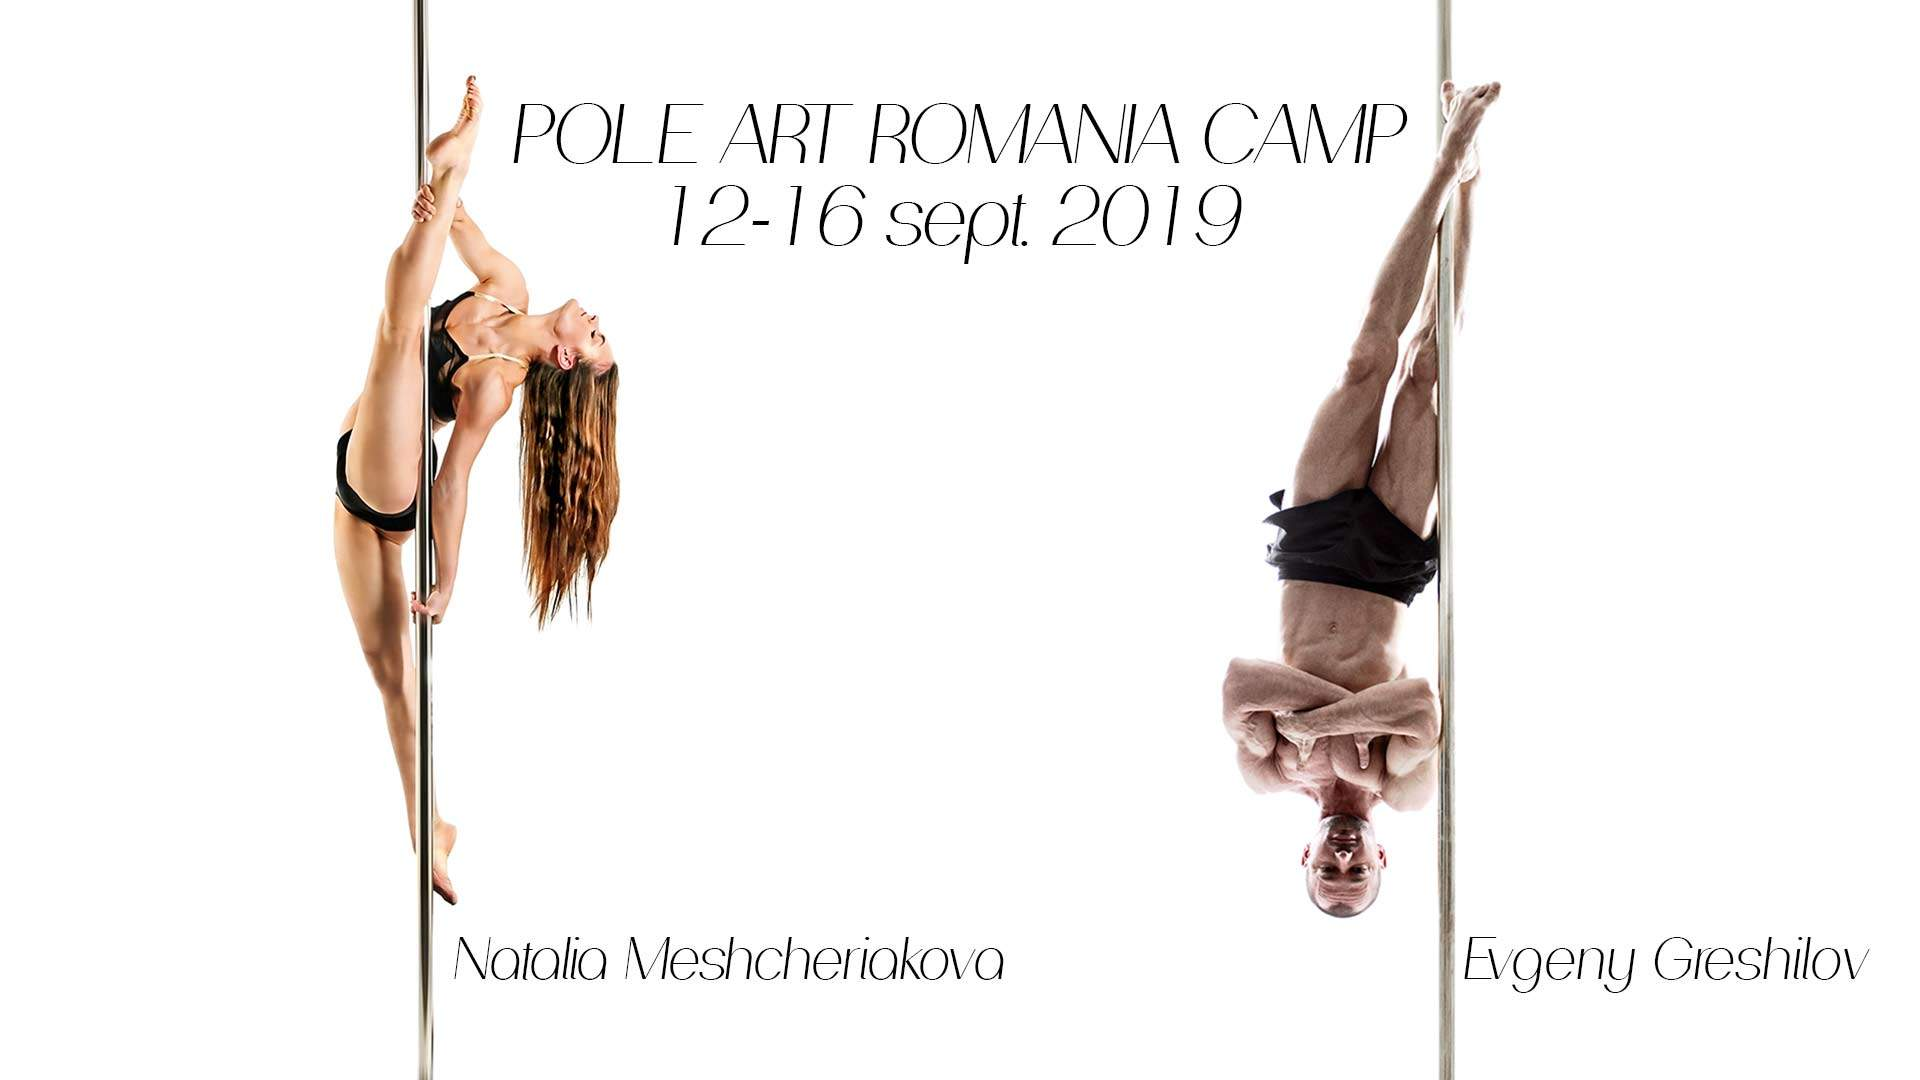 Pole Art Romania Camp Sept. 2019